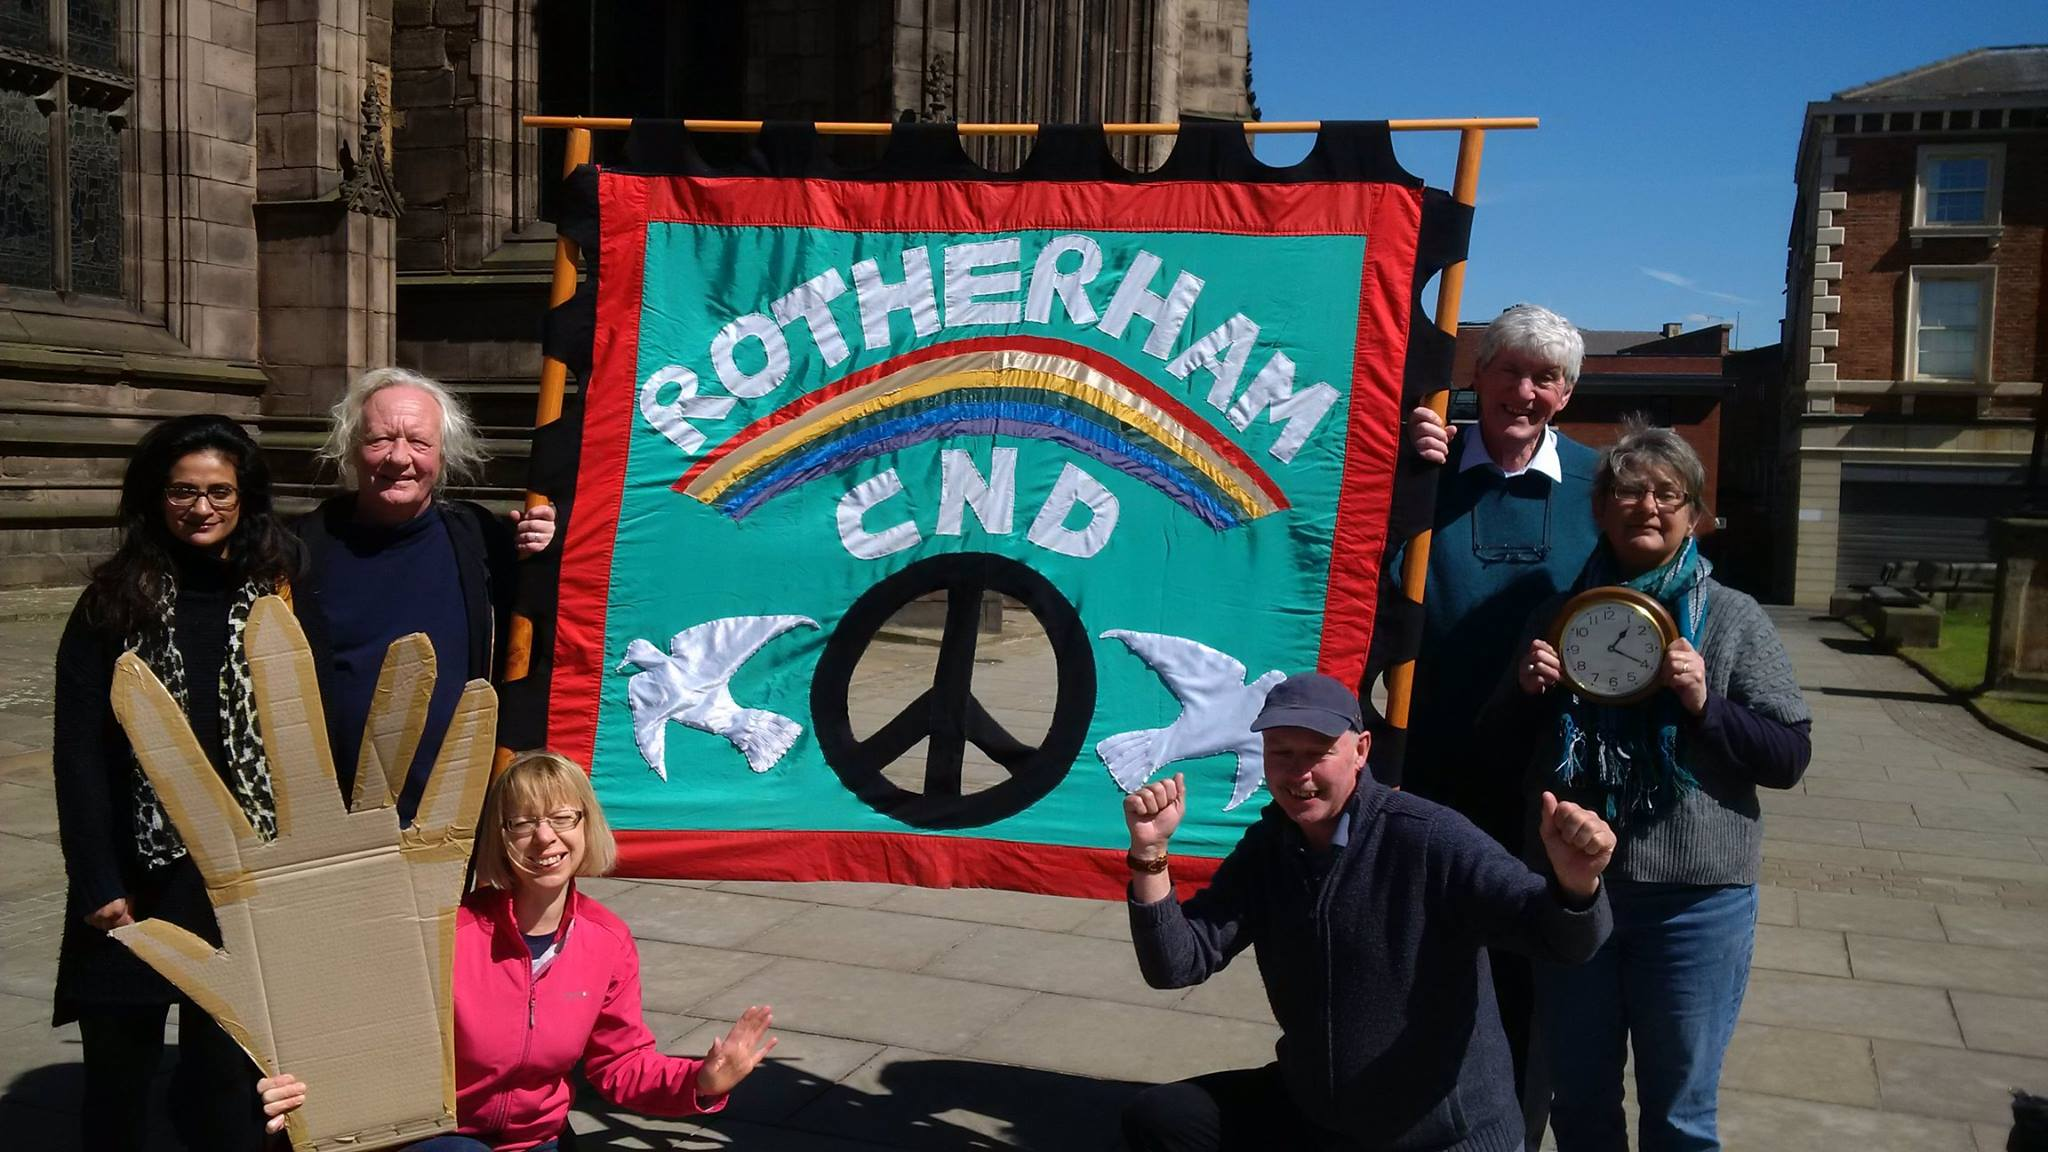 Rotherham CND  waving goodbye to Nukes today at 1.20pm UK time.